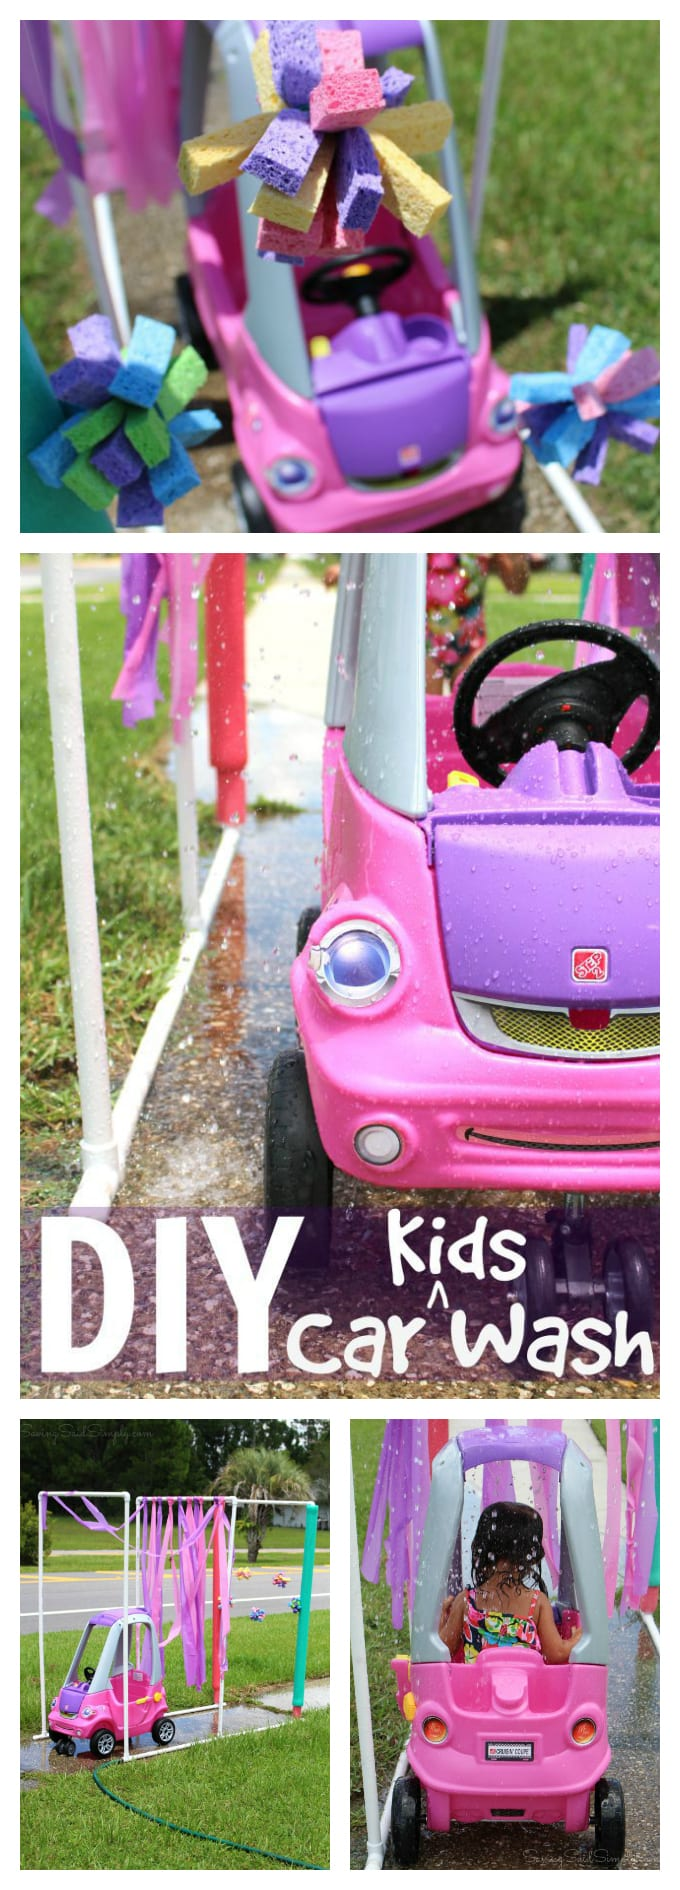 DIY kid car wash pinterest